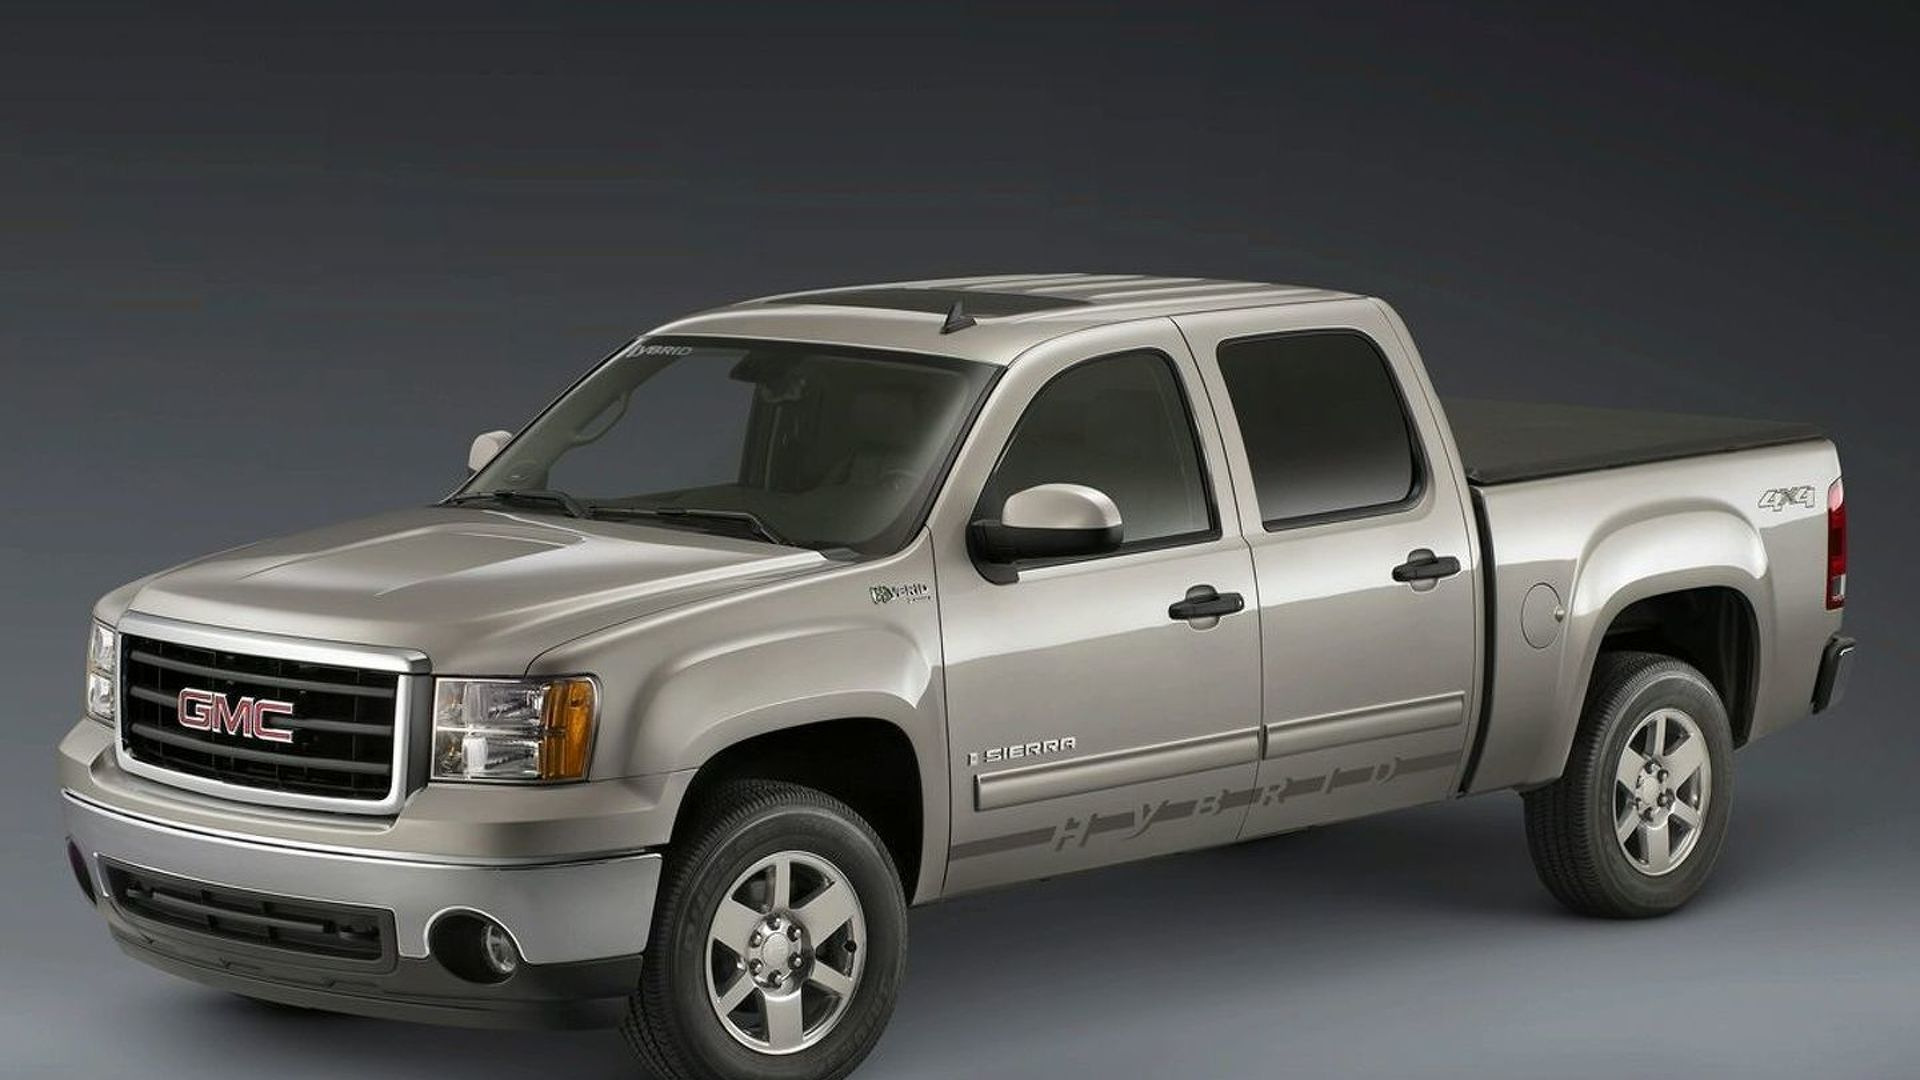 2009 GMC Sierra Hybrid to debut at Chicago Auto Show